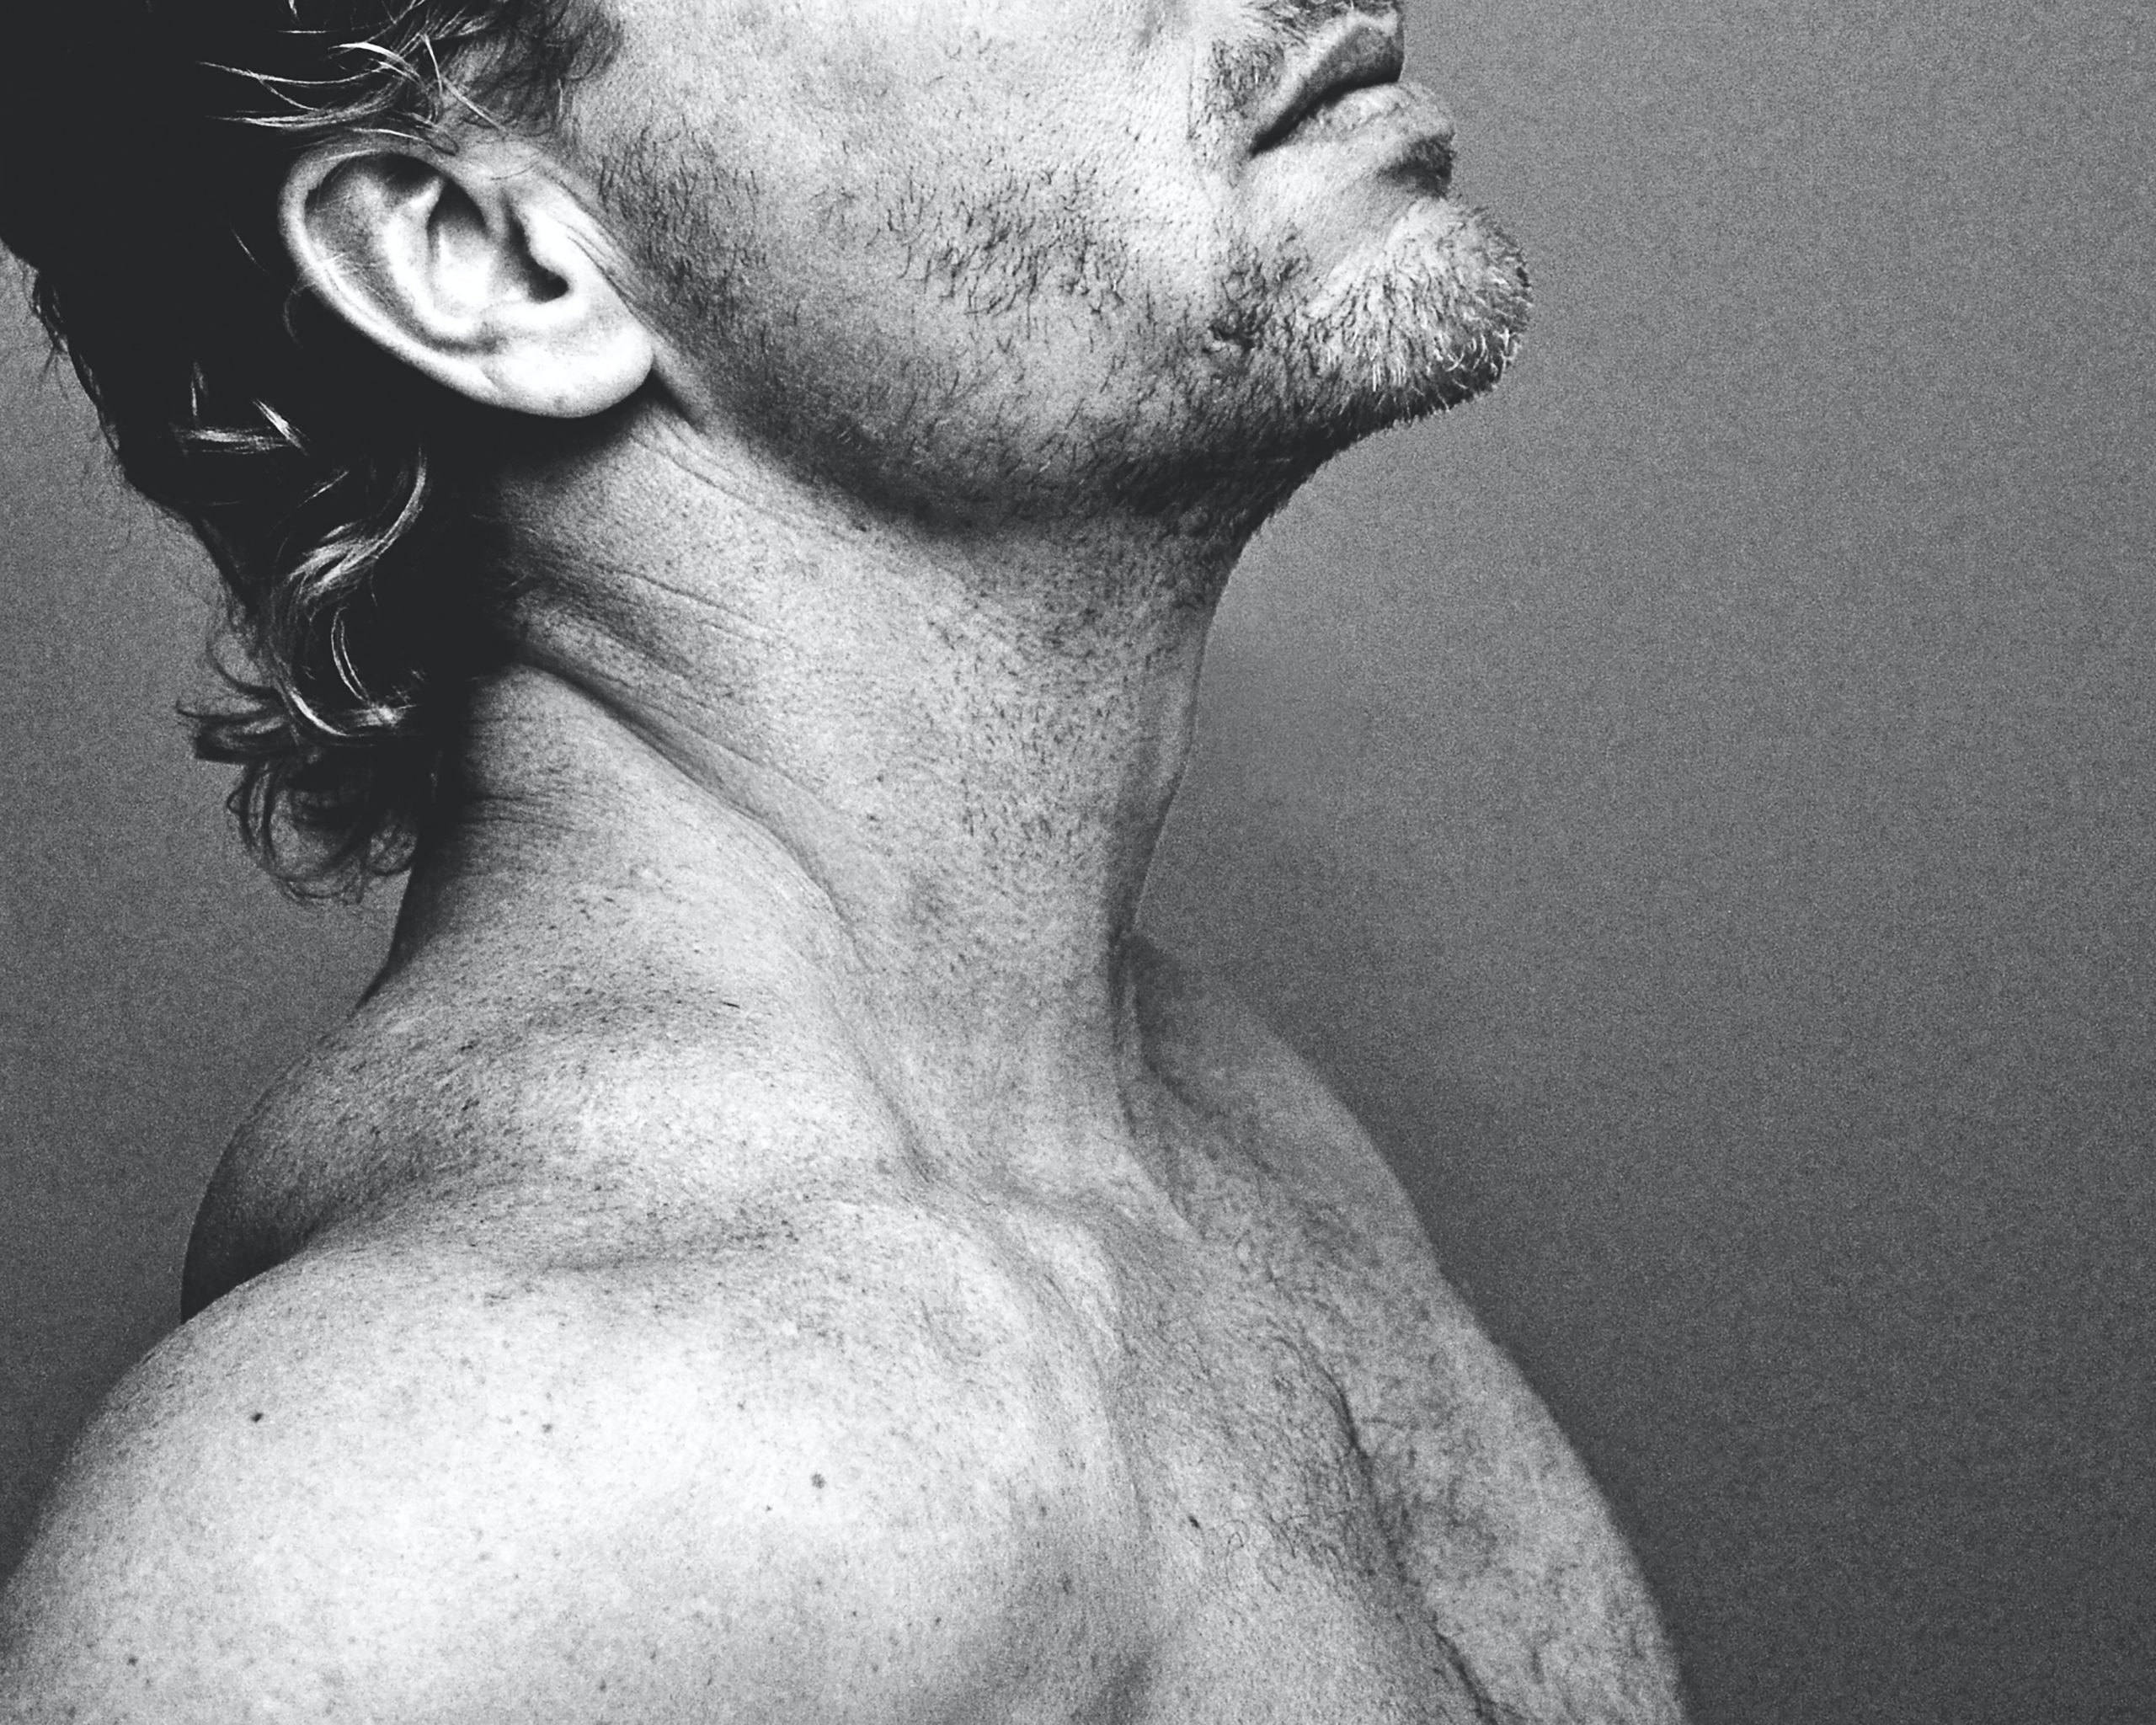 black and white closeup of man's chest & chin